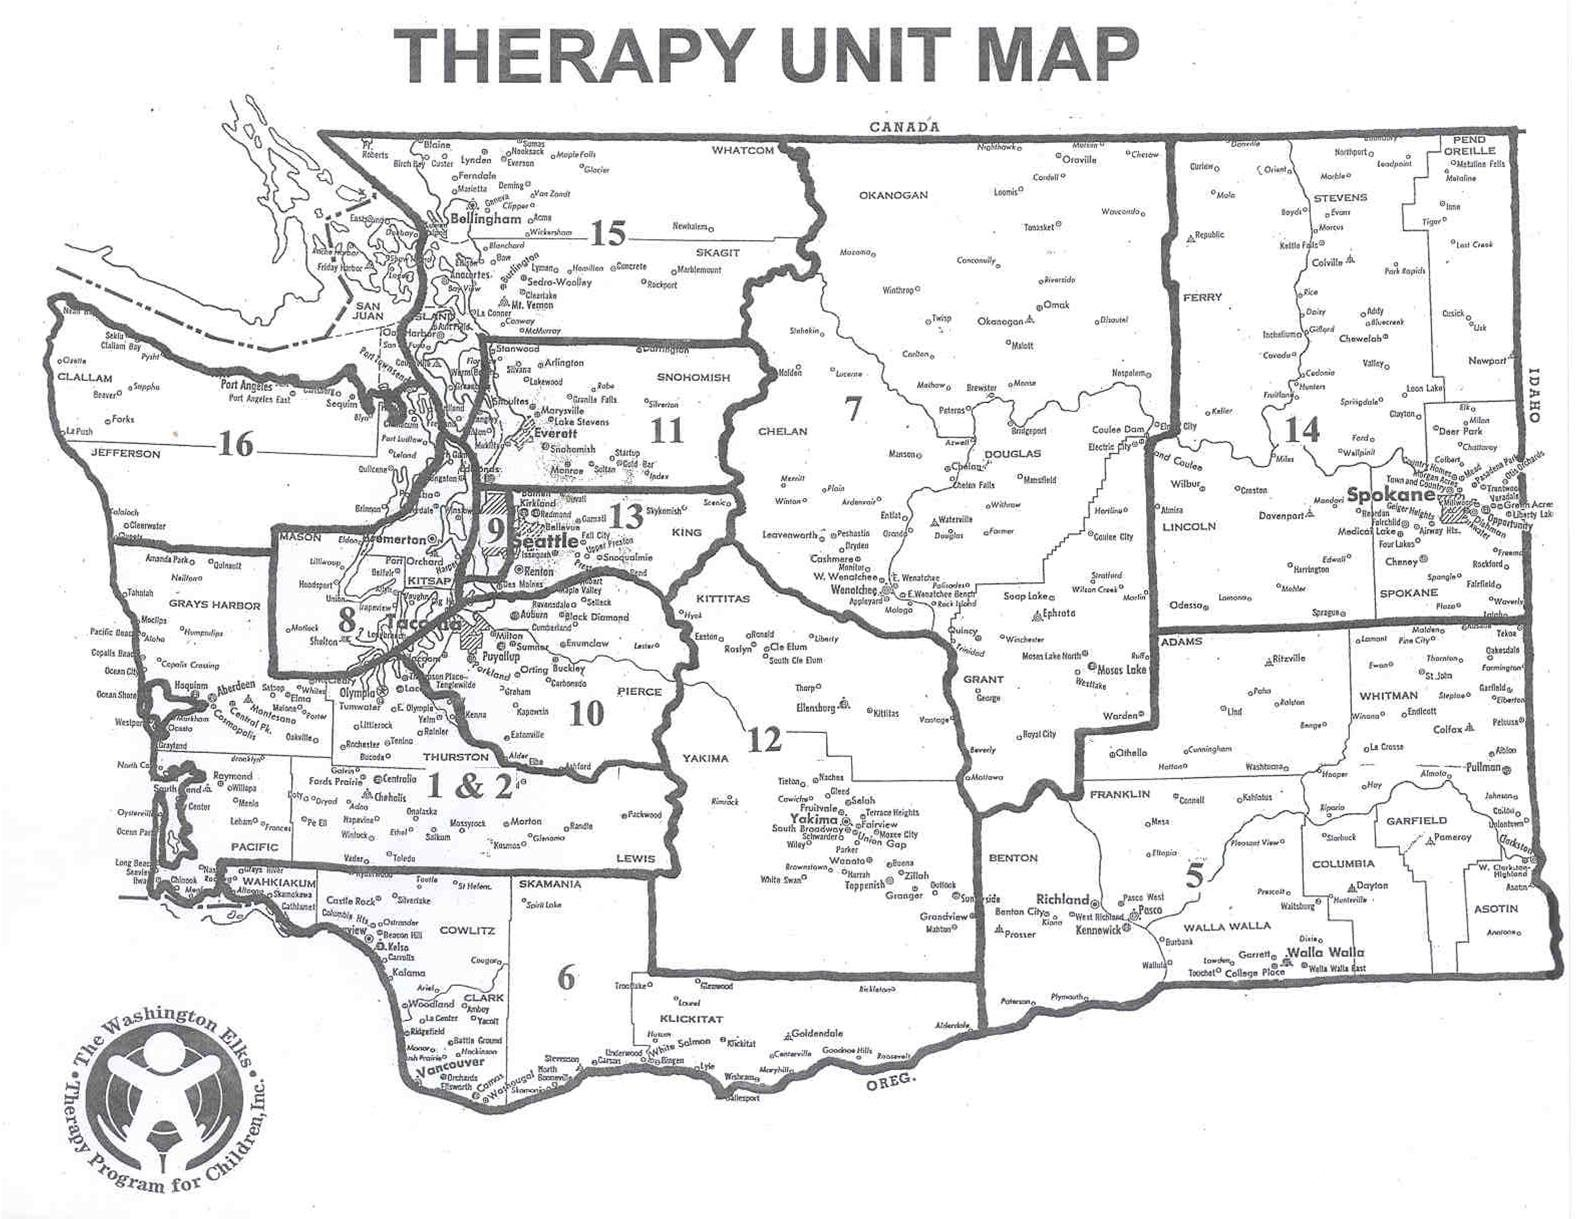 Therapy Unit Map